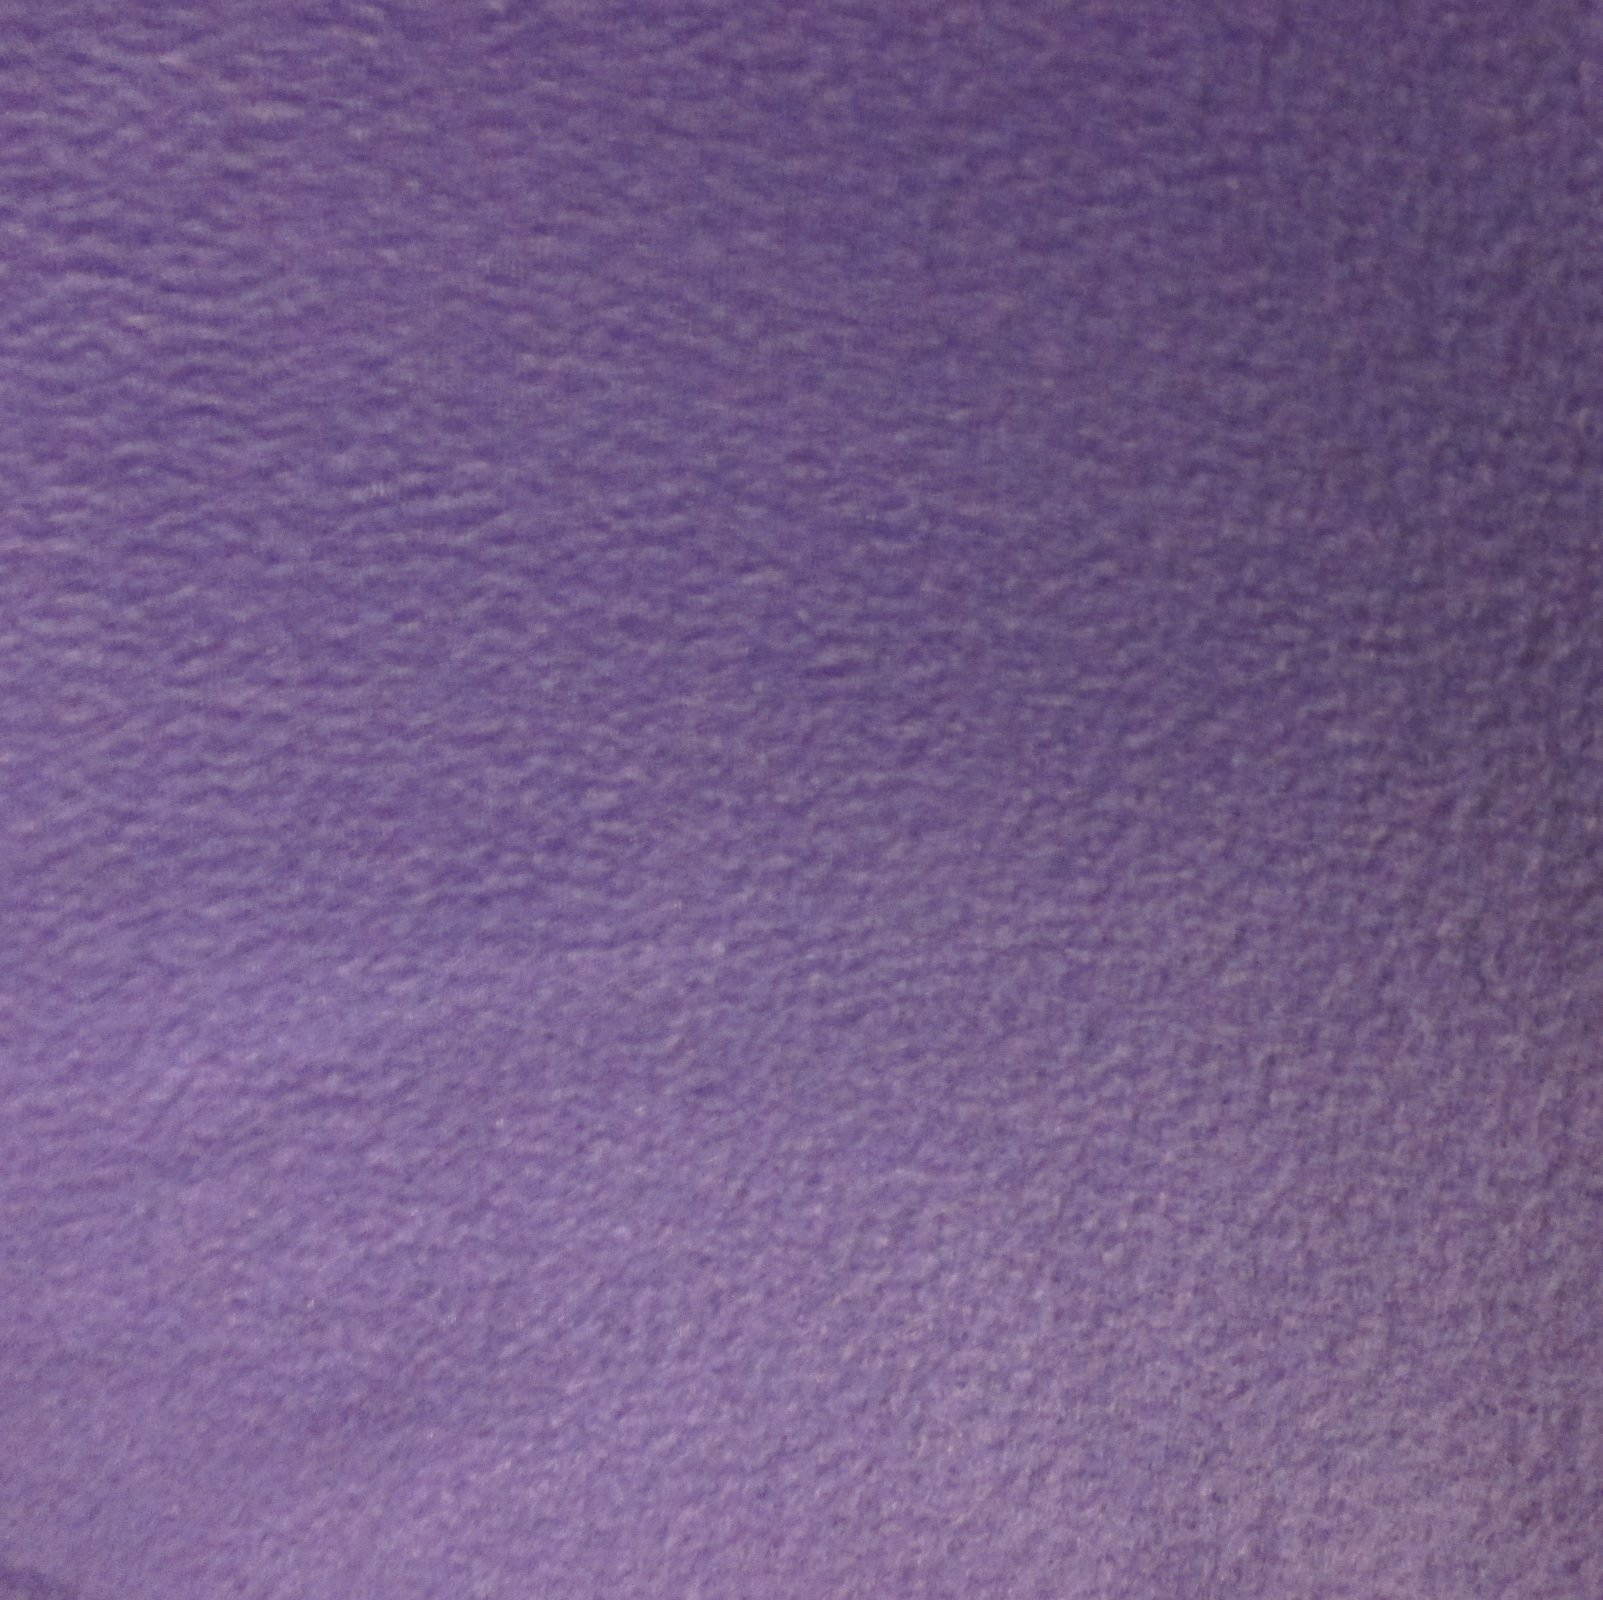 Solid Deep Purple Fleece